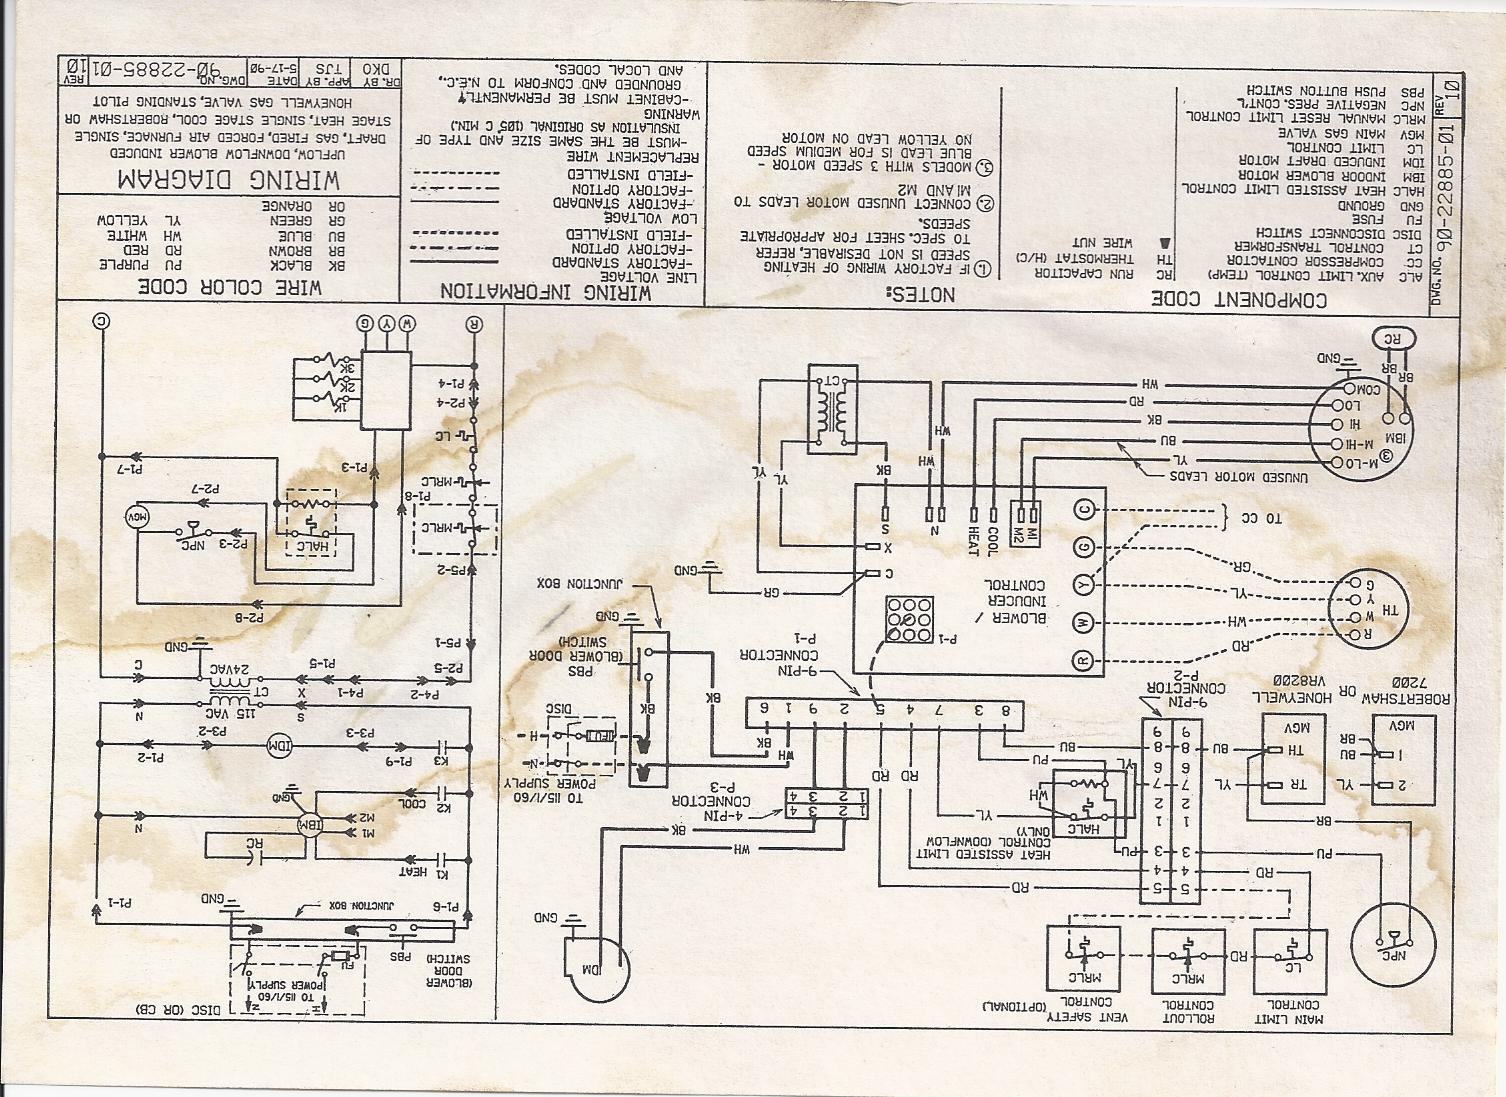 Ruud Gas Furnace Wiring Layout Diagrams Electrical Schematic Schematics Diagram Will Be A Thing U2022 Rh Exploreandmore Co Uk Installation Manuals Problems